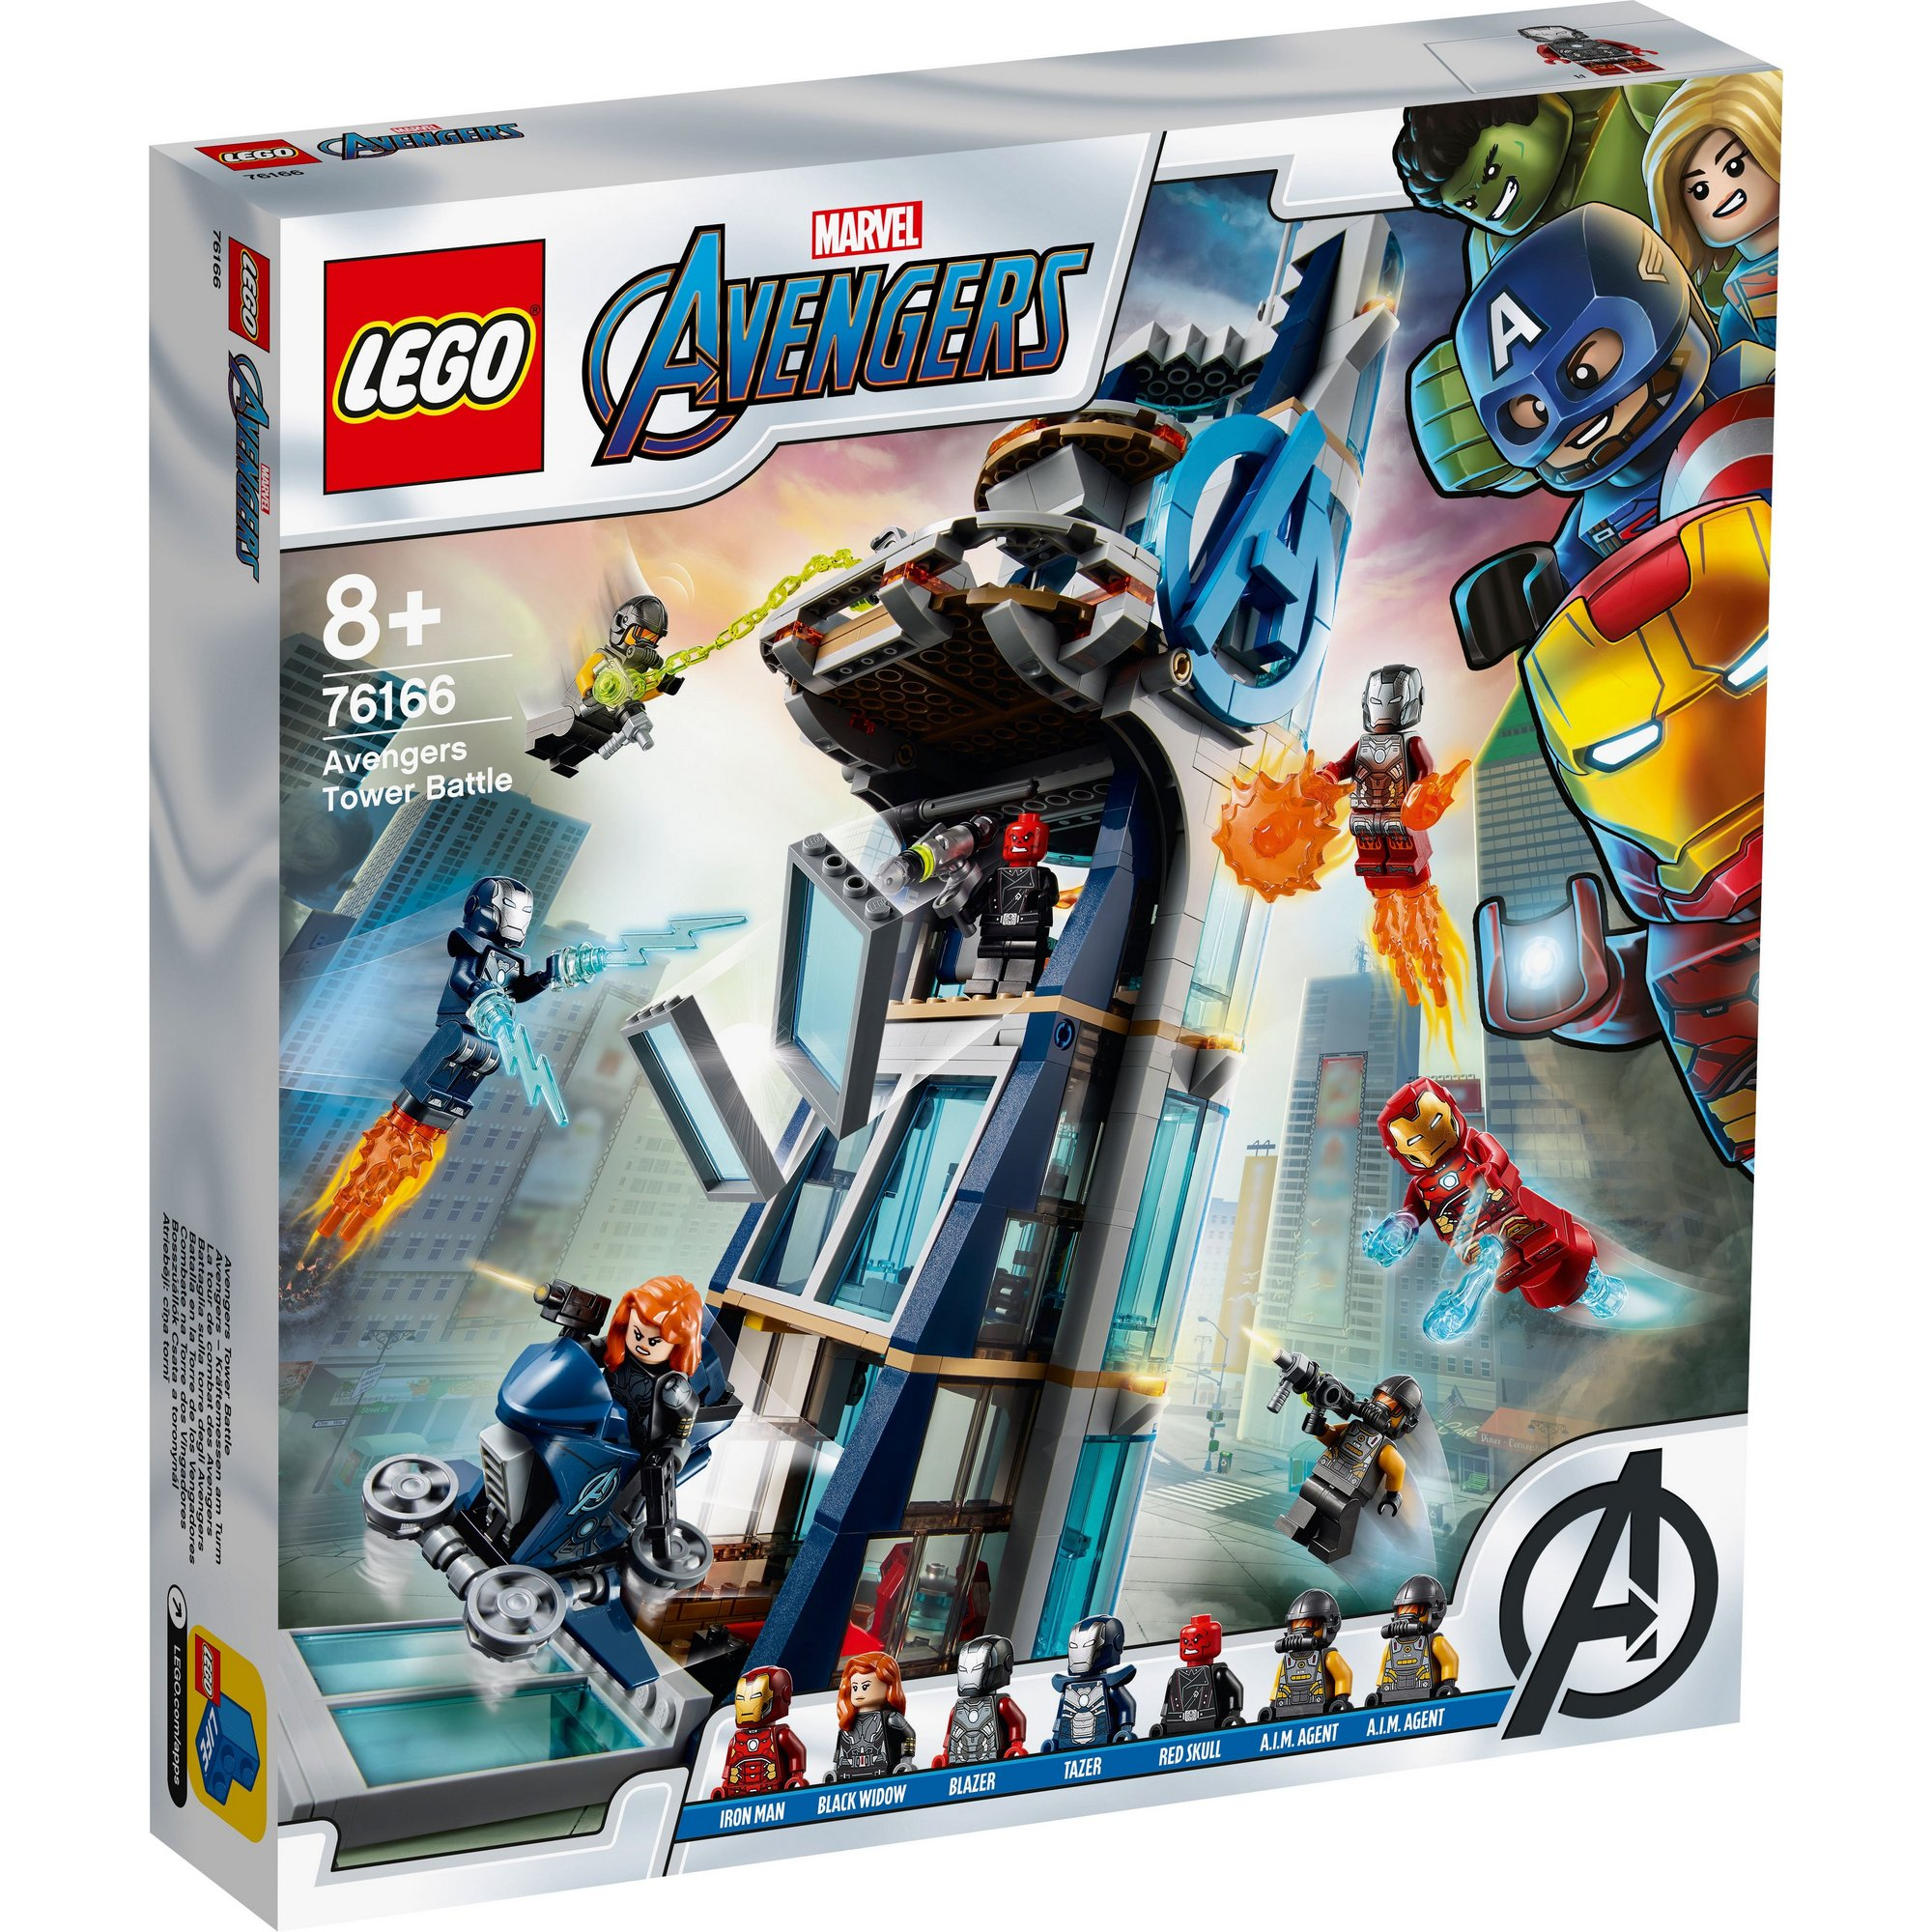 Image of LEGO Super Heroes Avengers Tower Battle